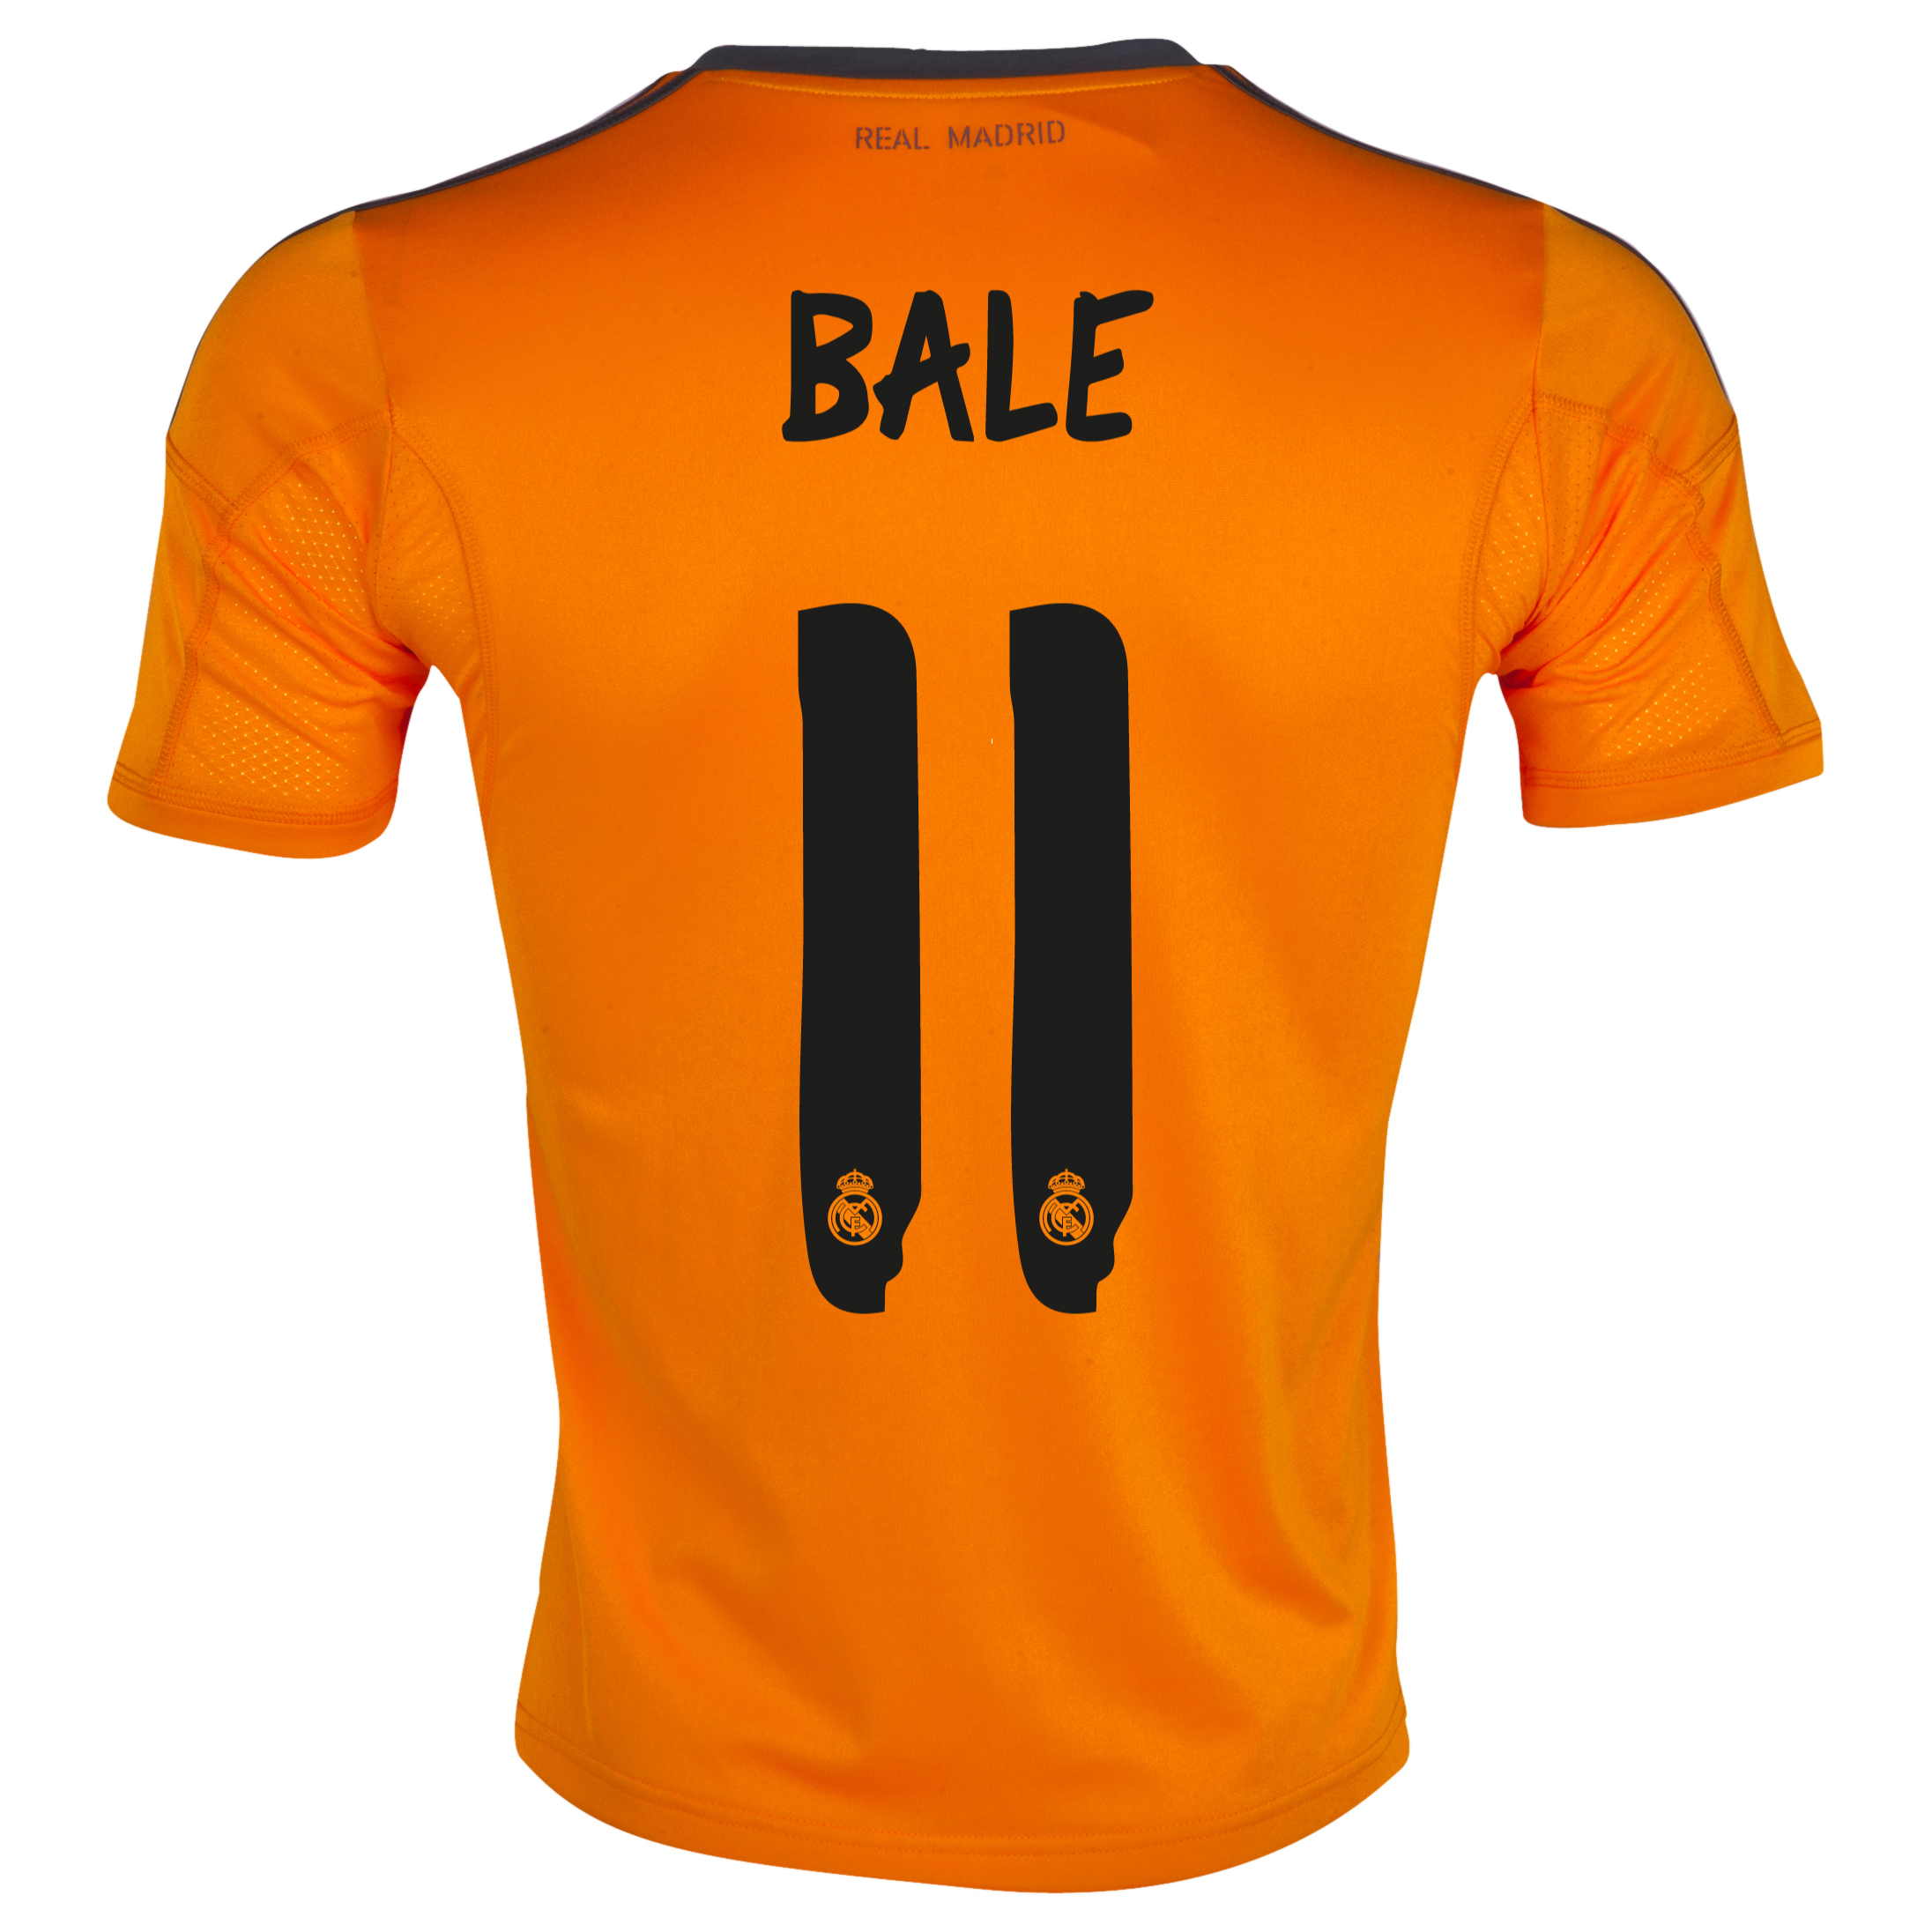 Real Madrid Third Shirt 2013/14 with Bale 11 printing